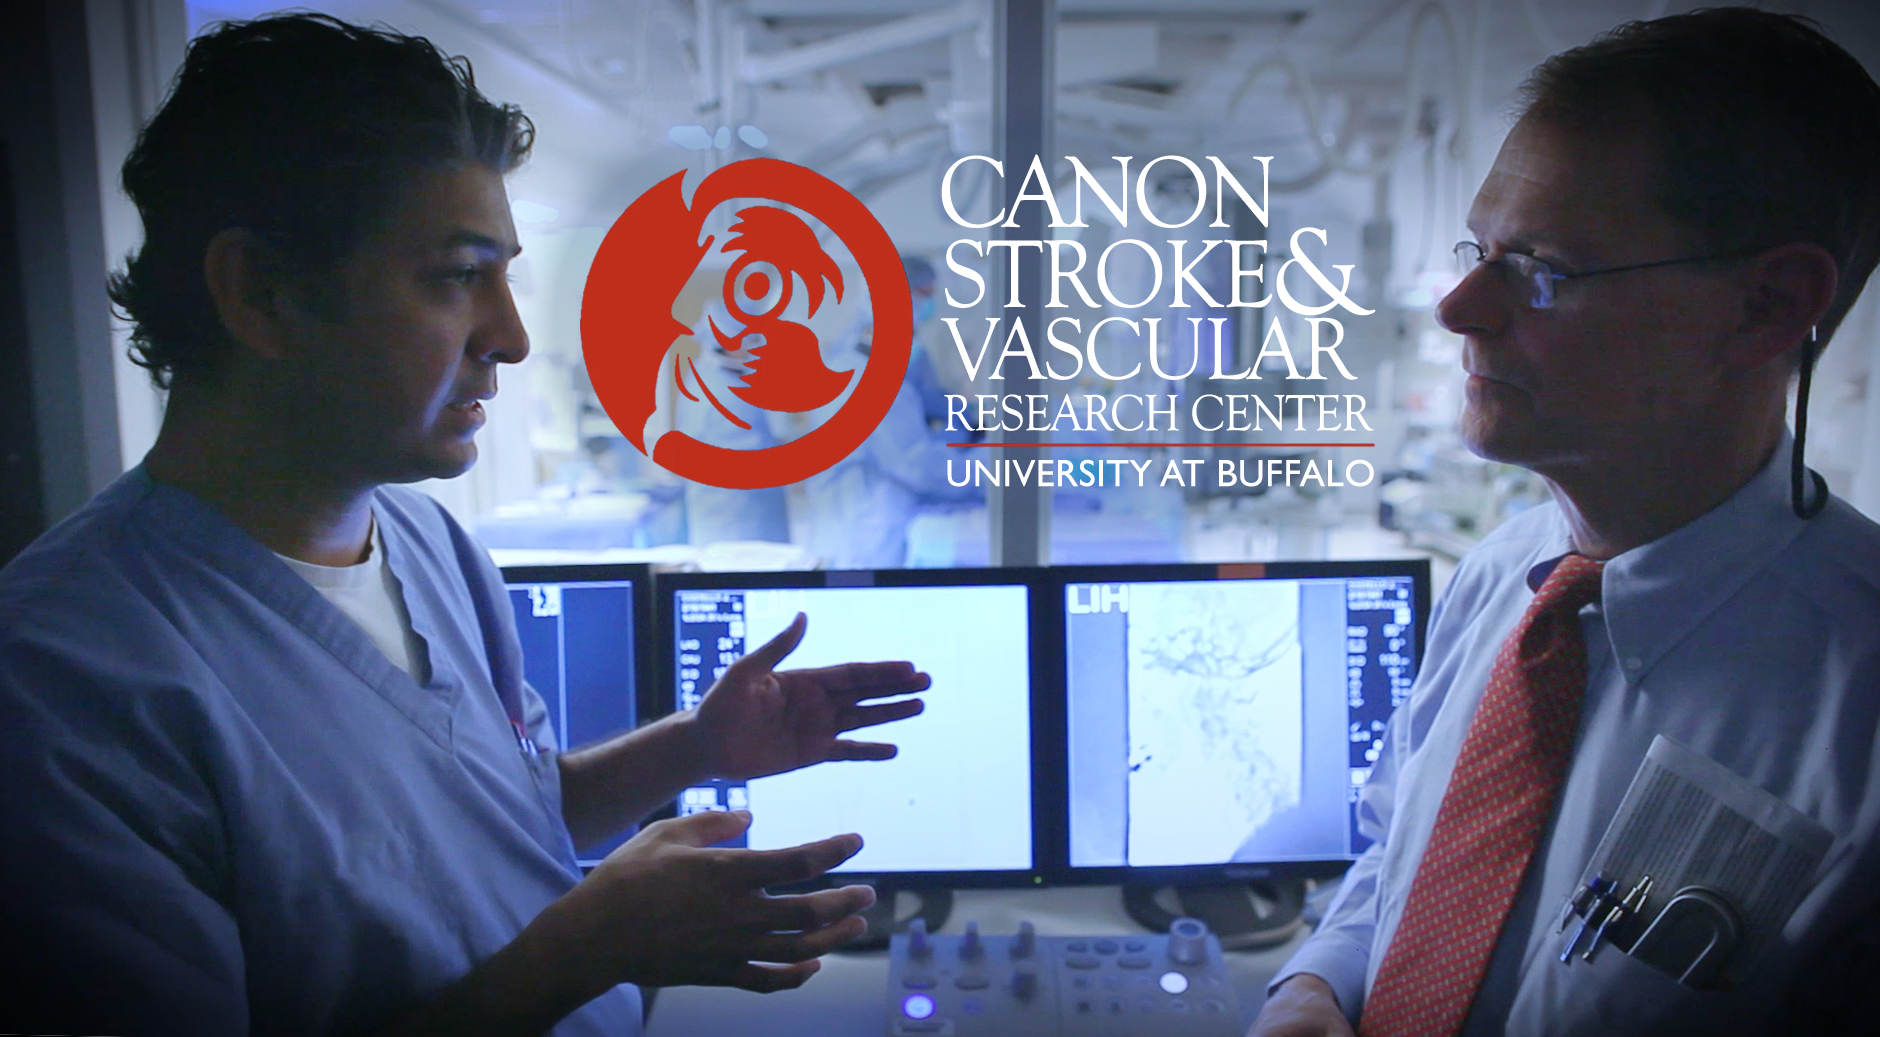 Canon Medical Systems Stroke & Vascular Research Center